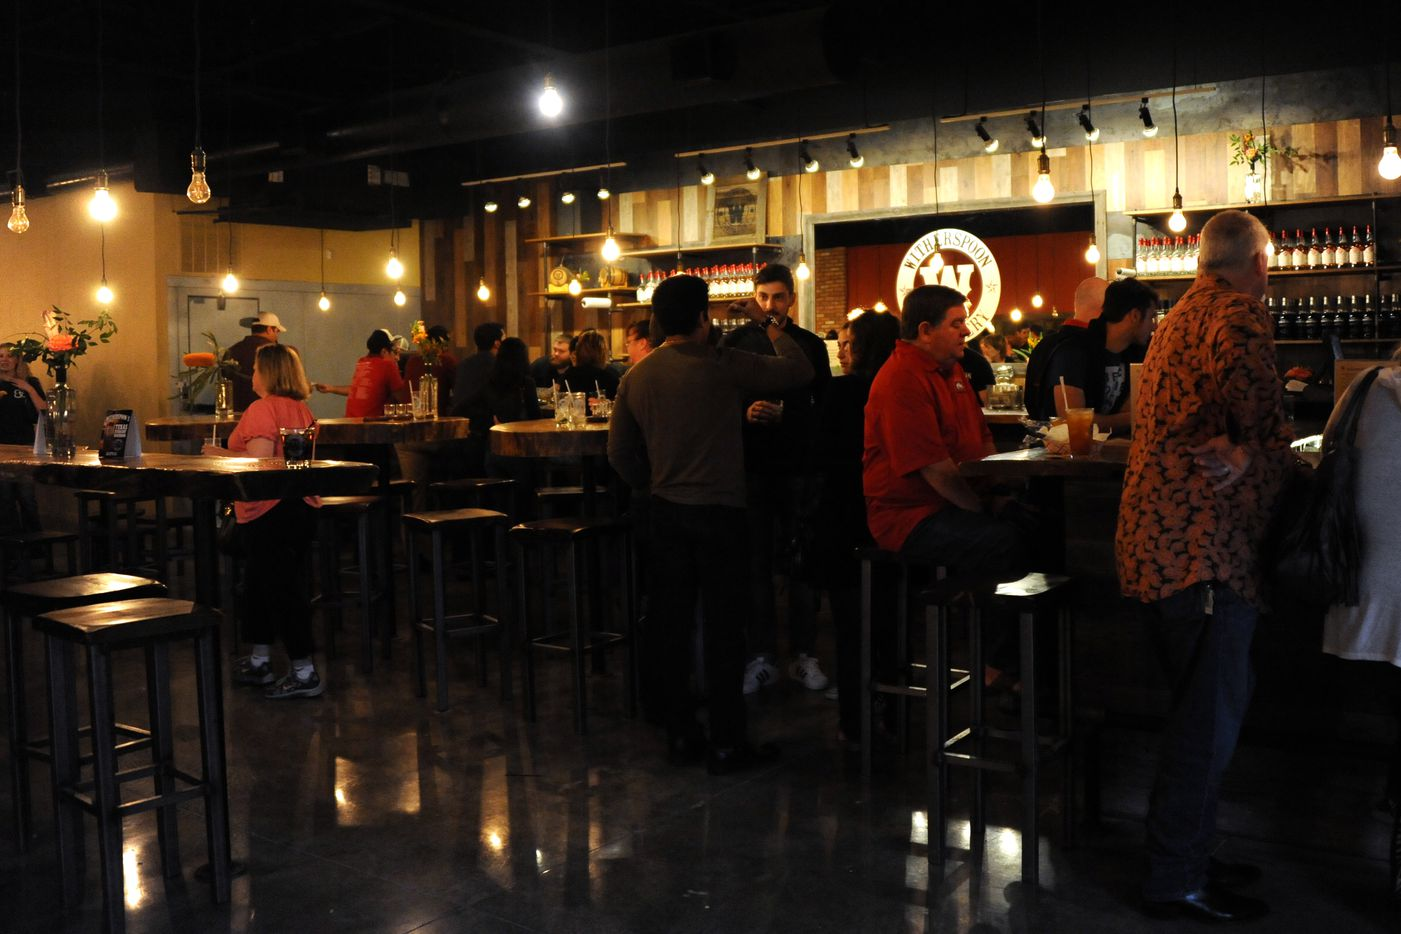 Guests relax and enjoy specialty cocktails in the bar at Witherspoon Distillery in Lewisville, TX on October 24, 2015.